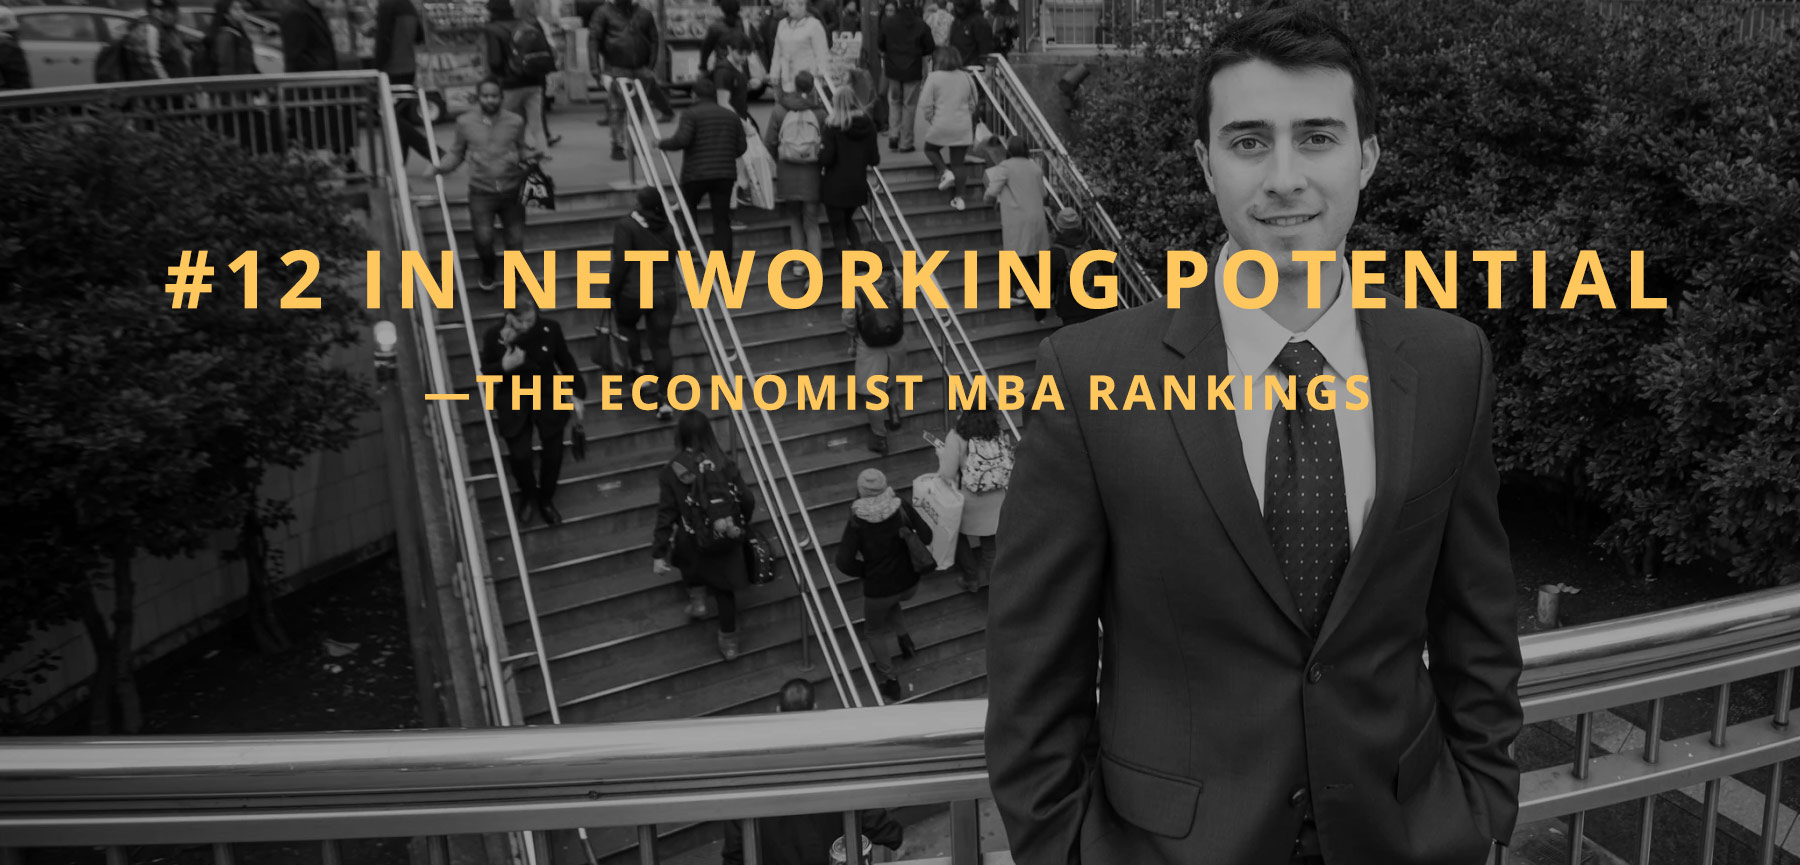 #12 in networking potential